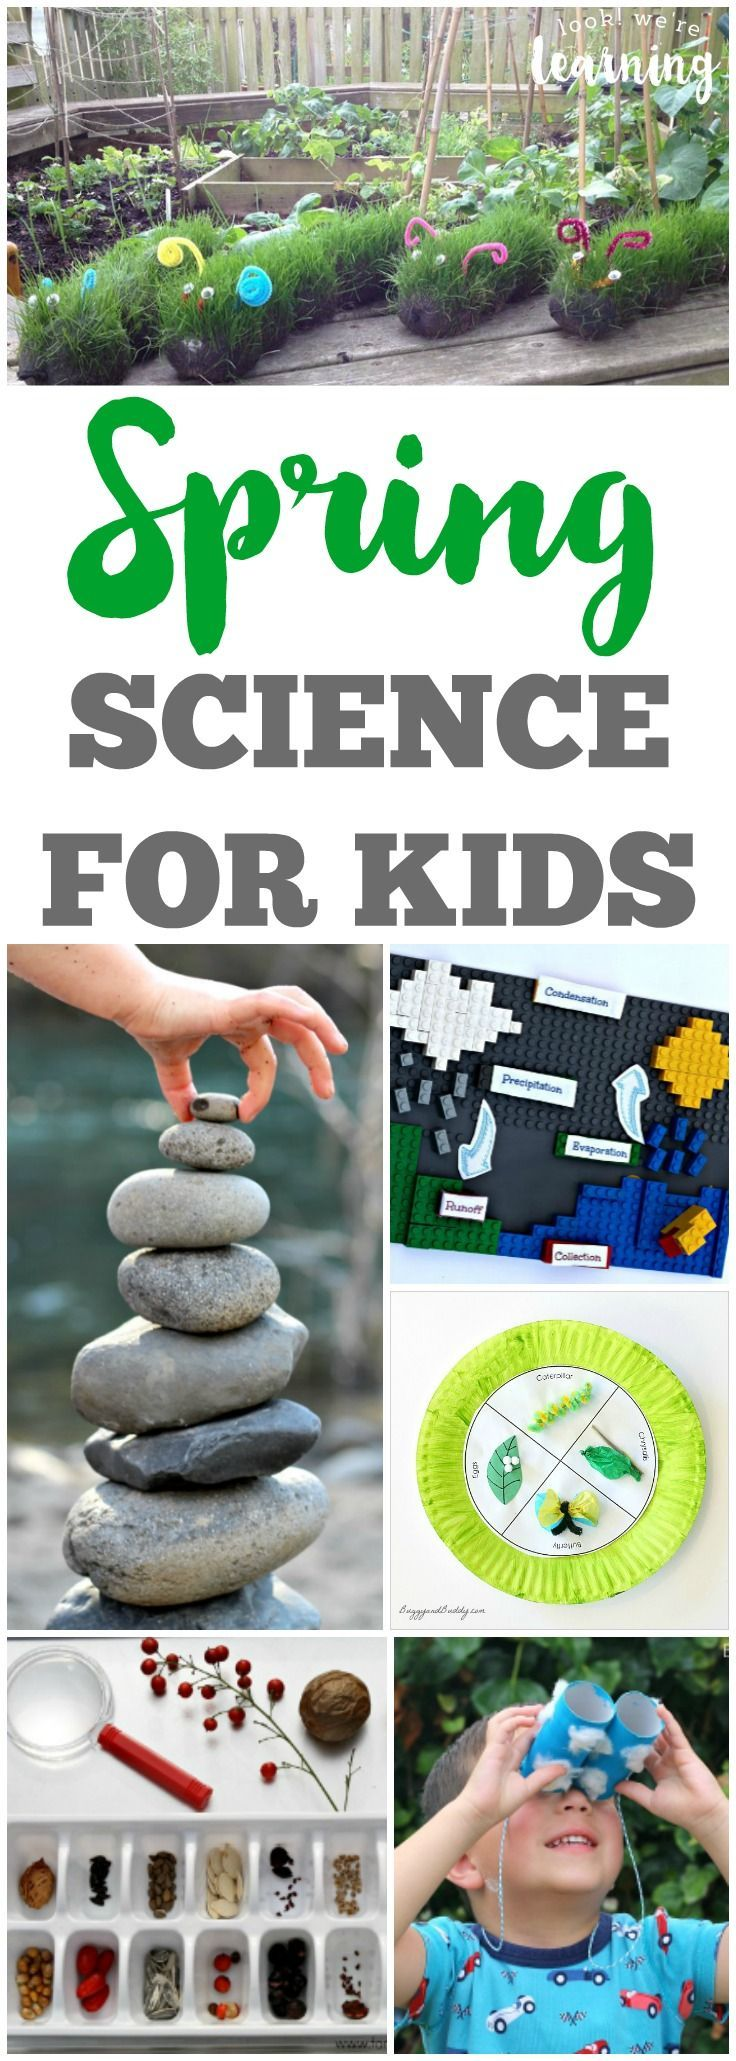 Learn about science with the little ones with these fun spring science ideas for kids! #scienceforkids #learning #kidsactivities